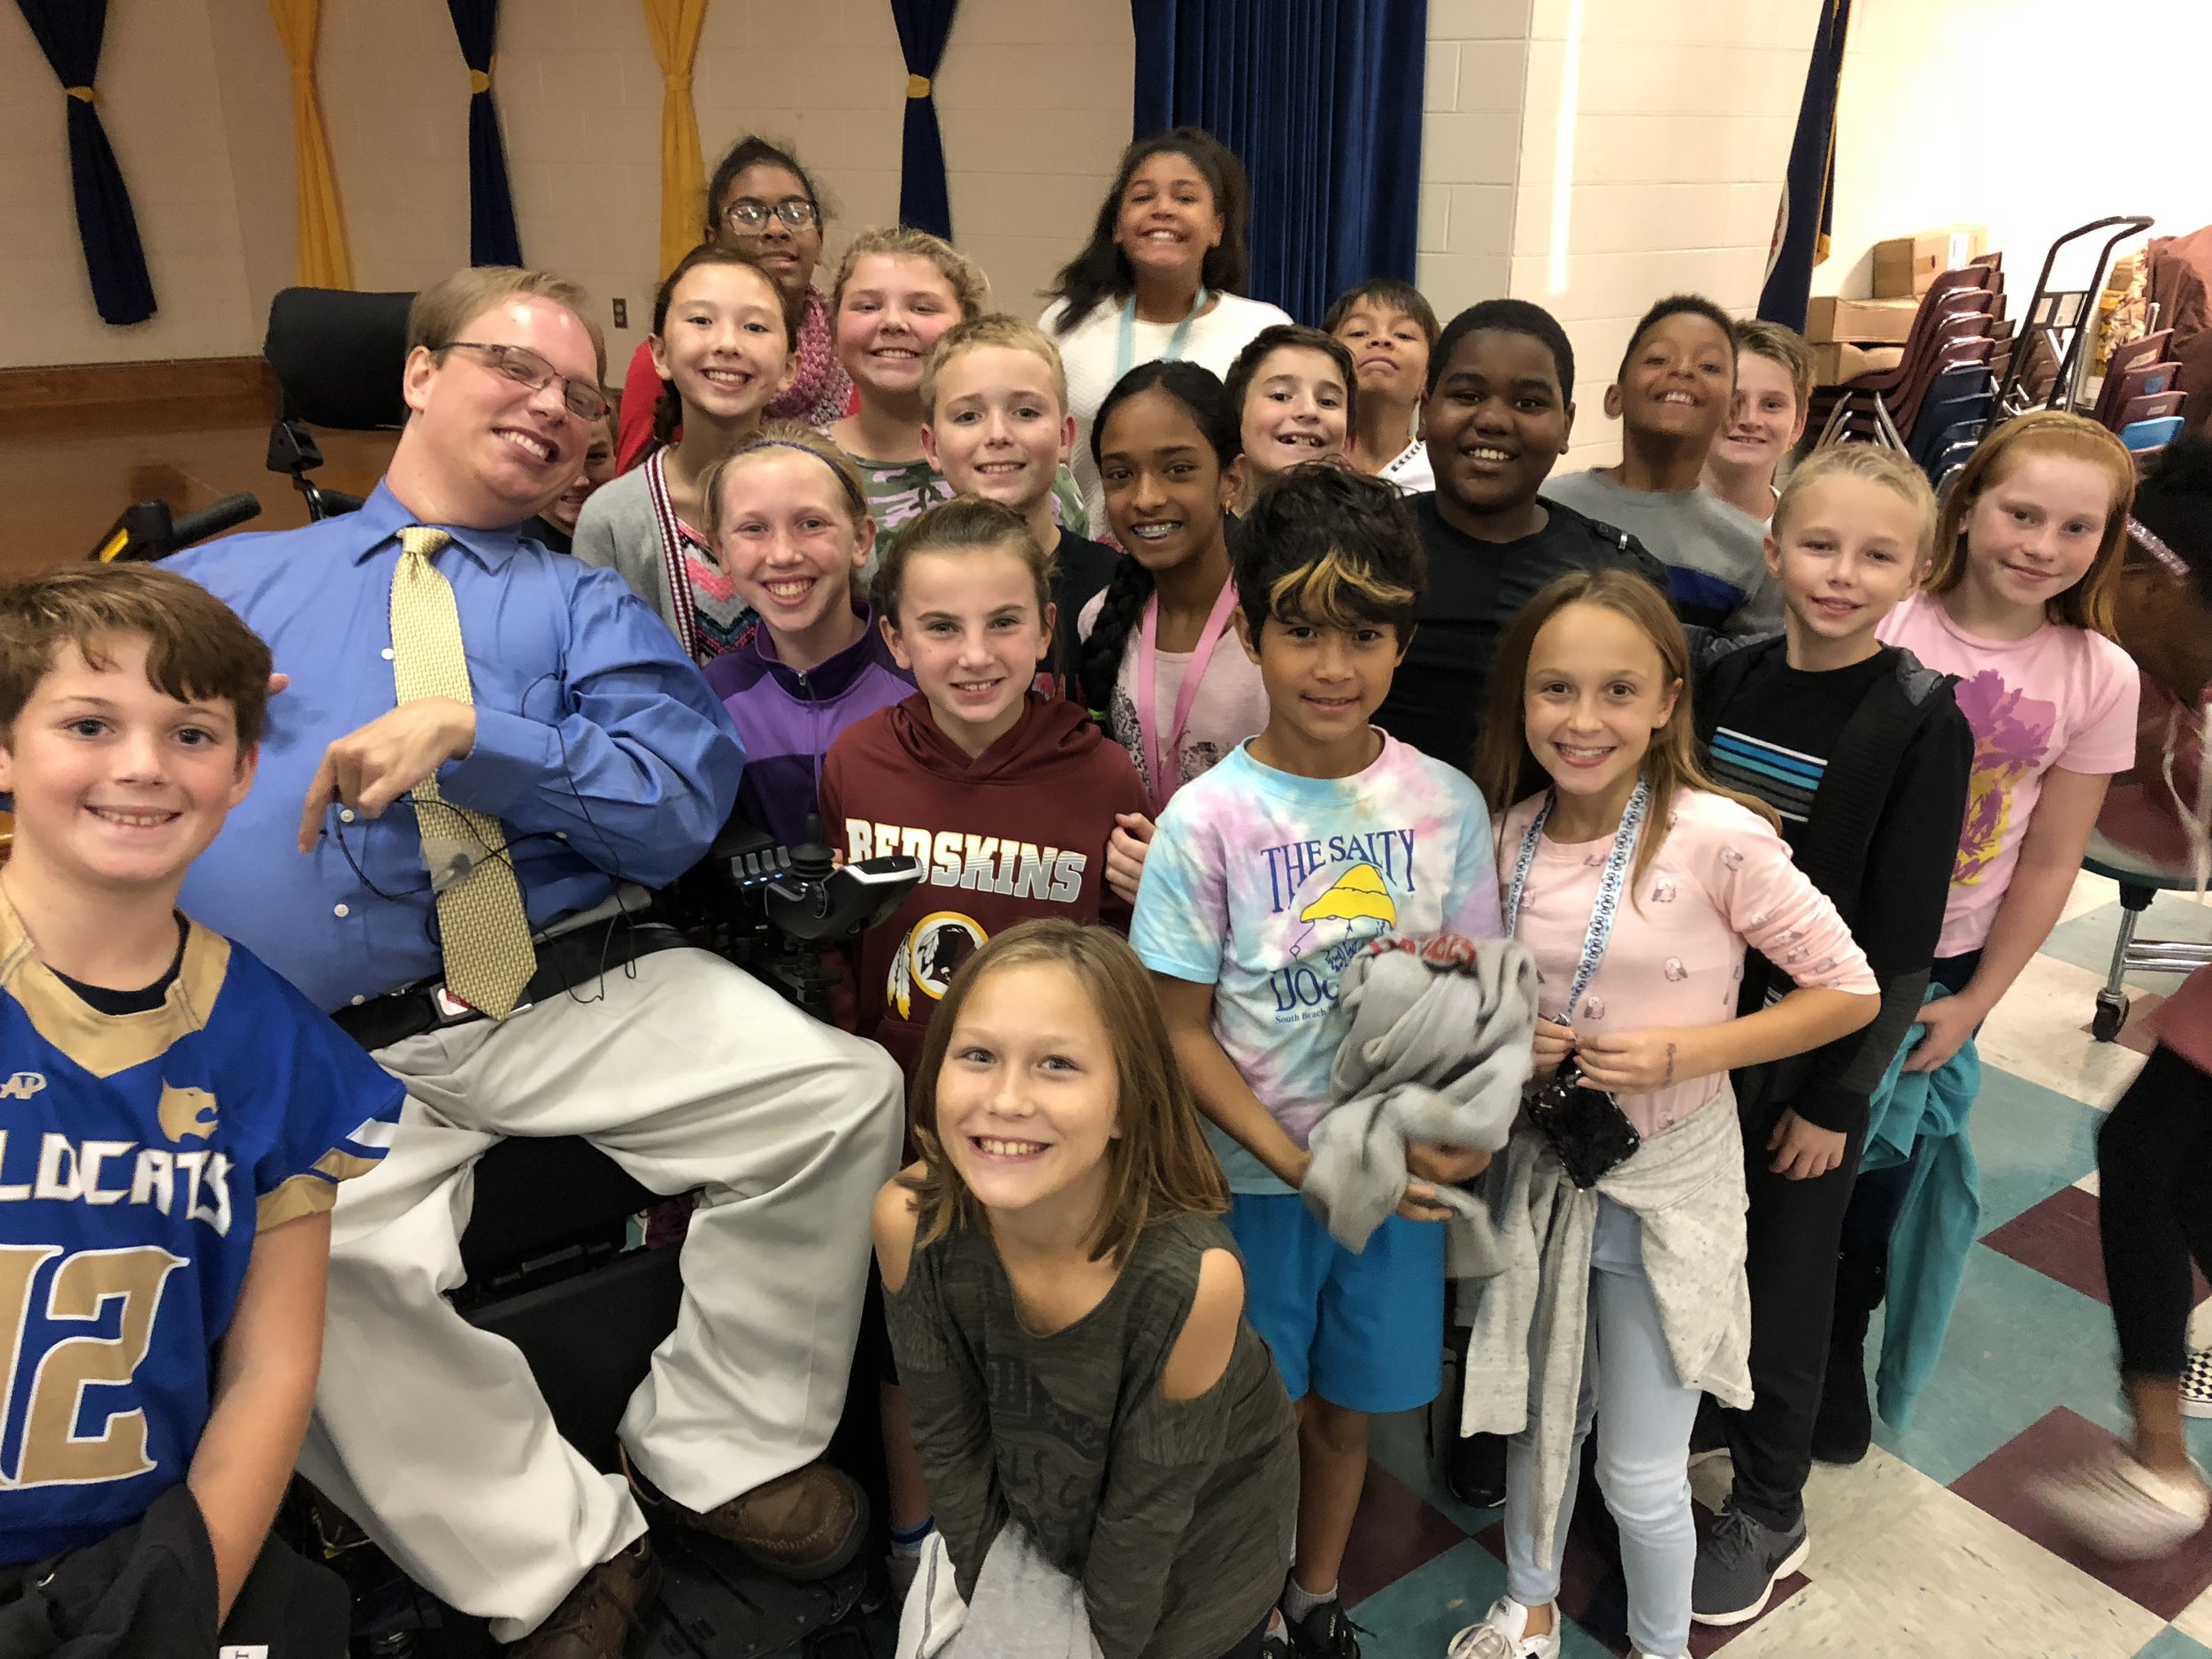 PHOTO: Matthew taking a group photo with several smiling fourth and fifth graders from Woolridge Elementary School after his Positively Inclusive presentation.